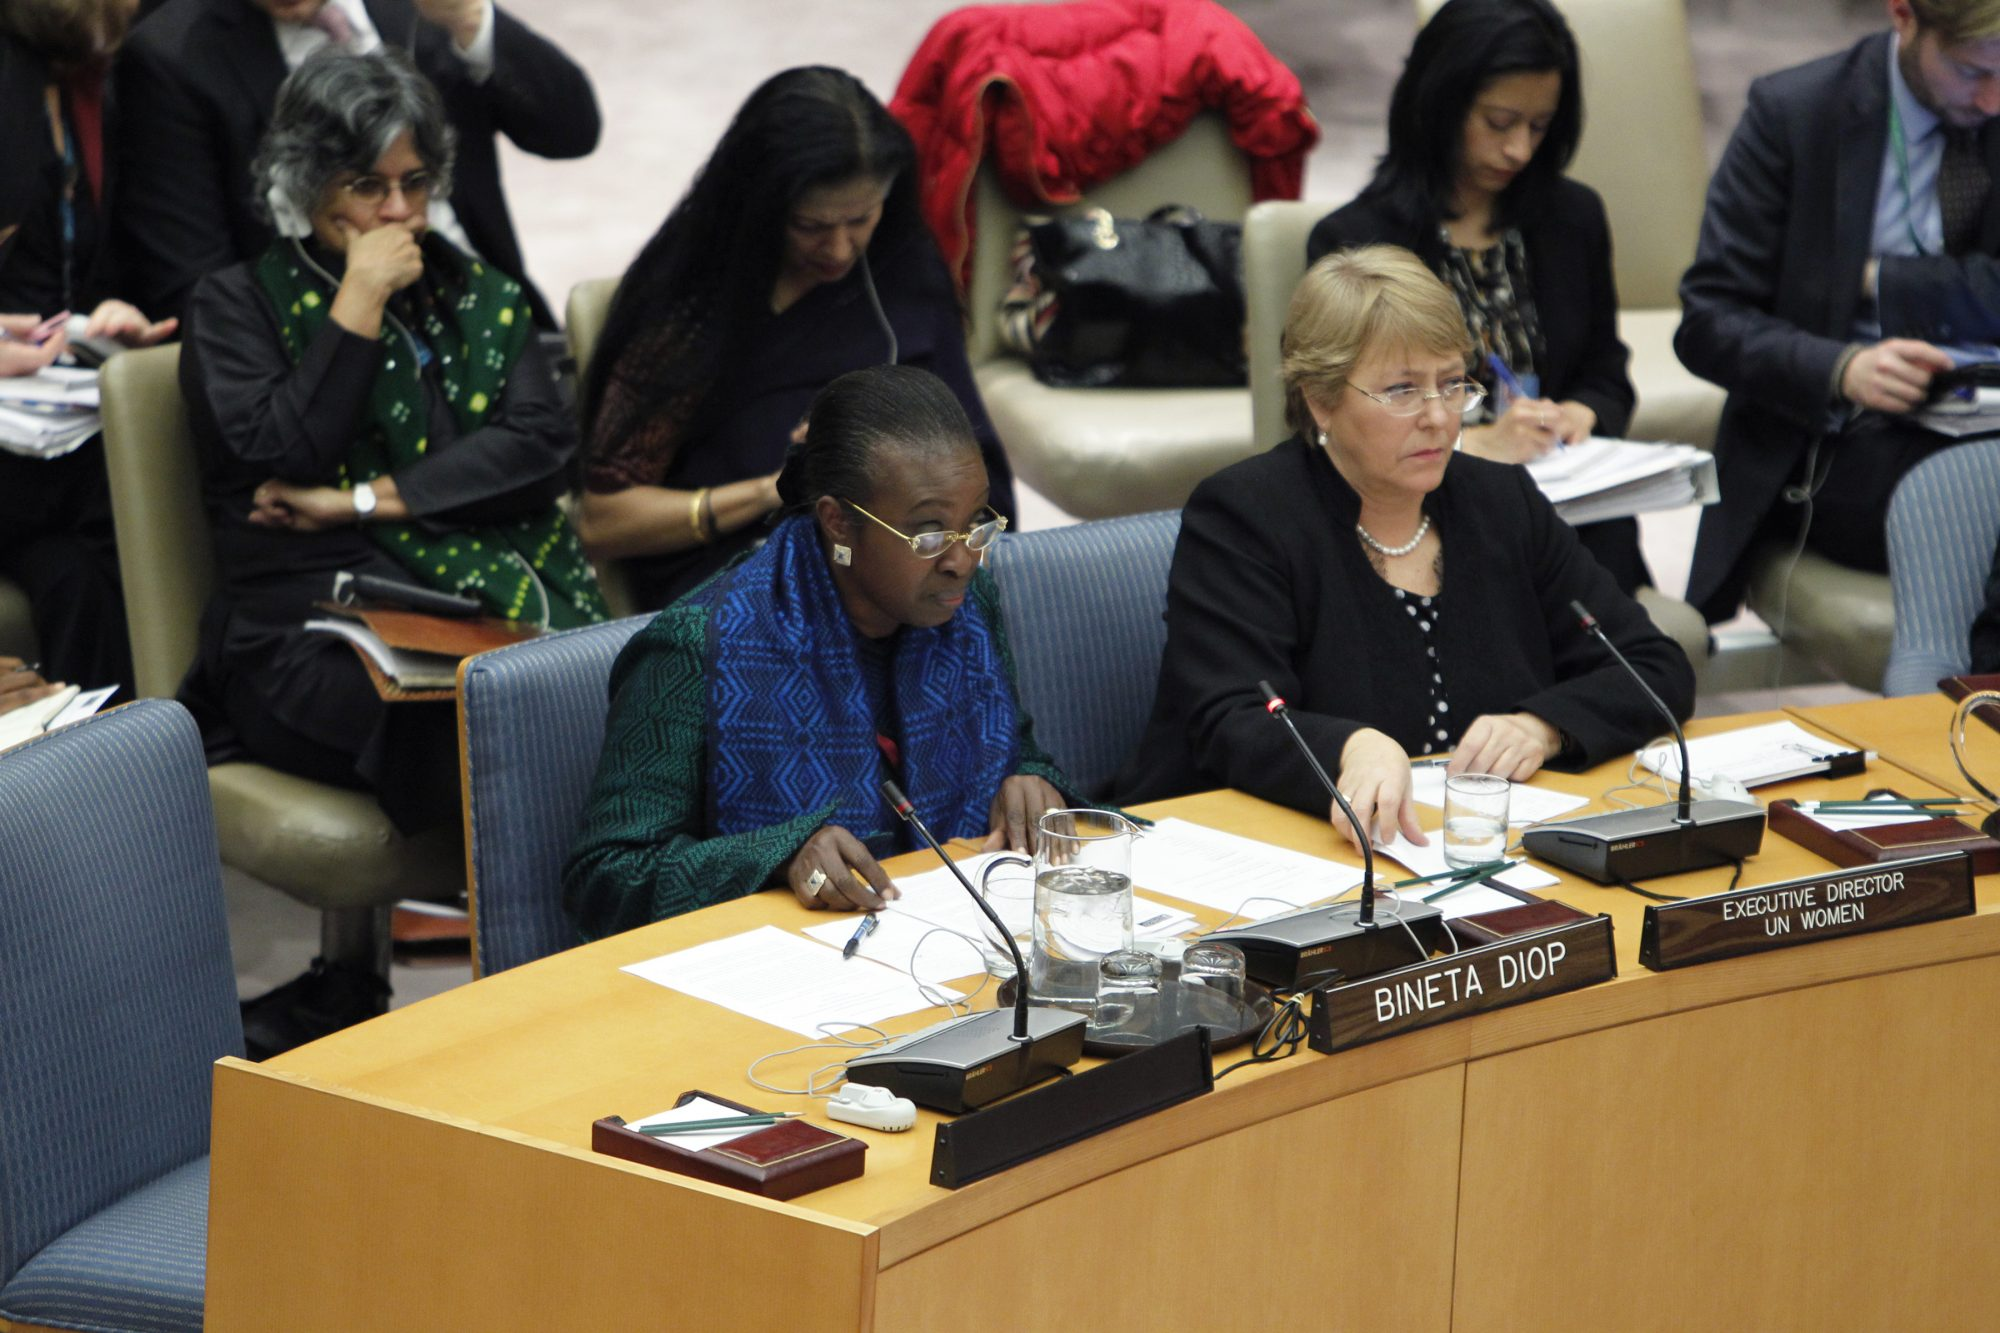 Statement by Ms. Bineta Diop at UN Security Council Open Debate on Women, Peace and Security